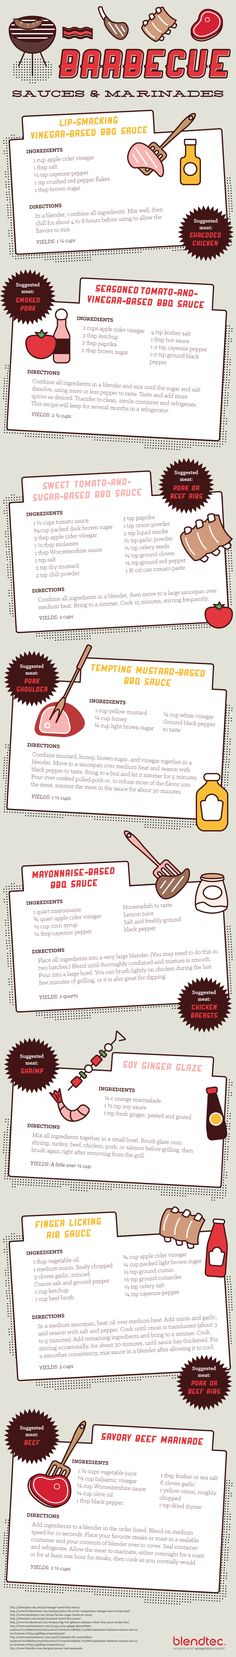 BBQ sauce recipes